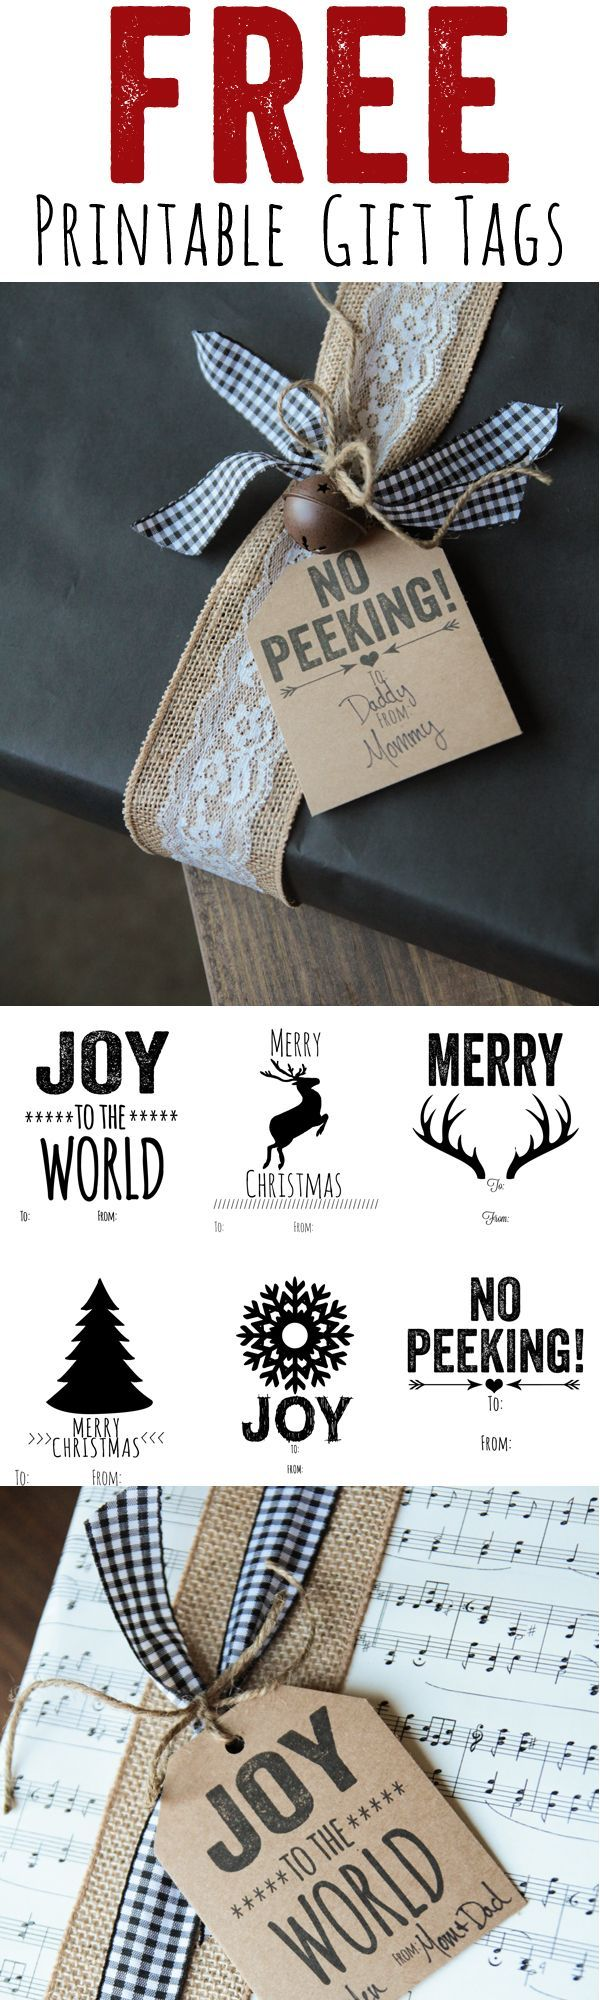 Free Printable Christmas Gift Tags from @Shanti Paul Paul Leeuwen Yell-2-Chic.com.........I just like the idea of the ribbon and burlap!